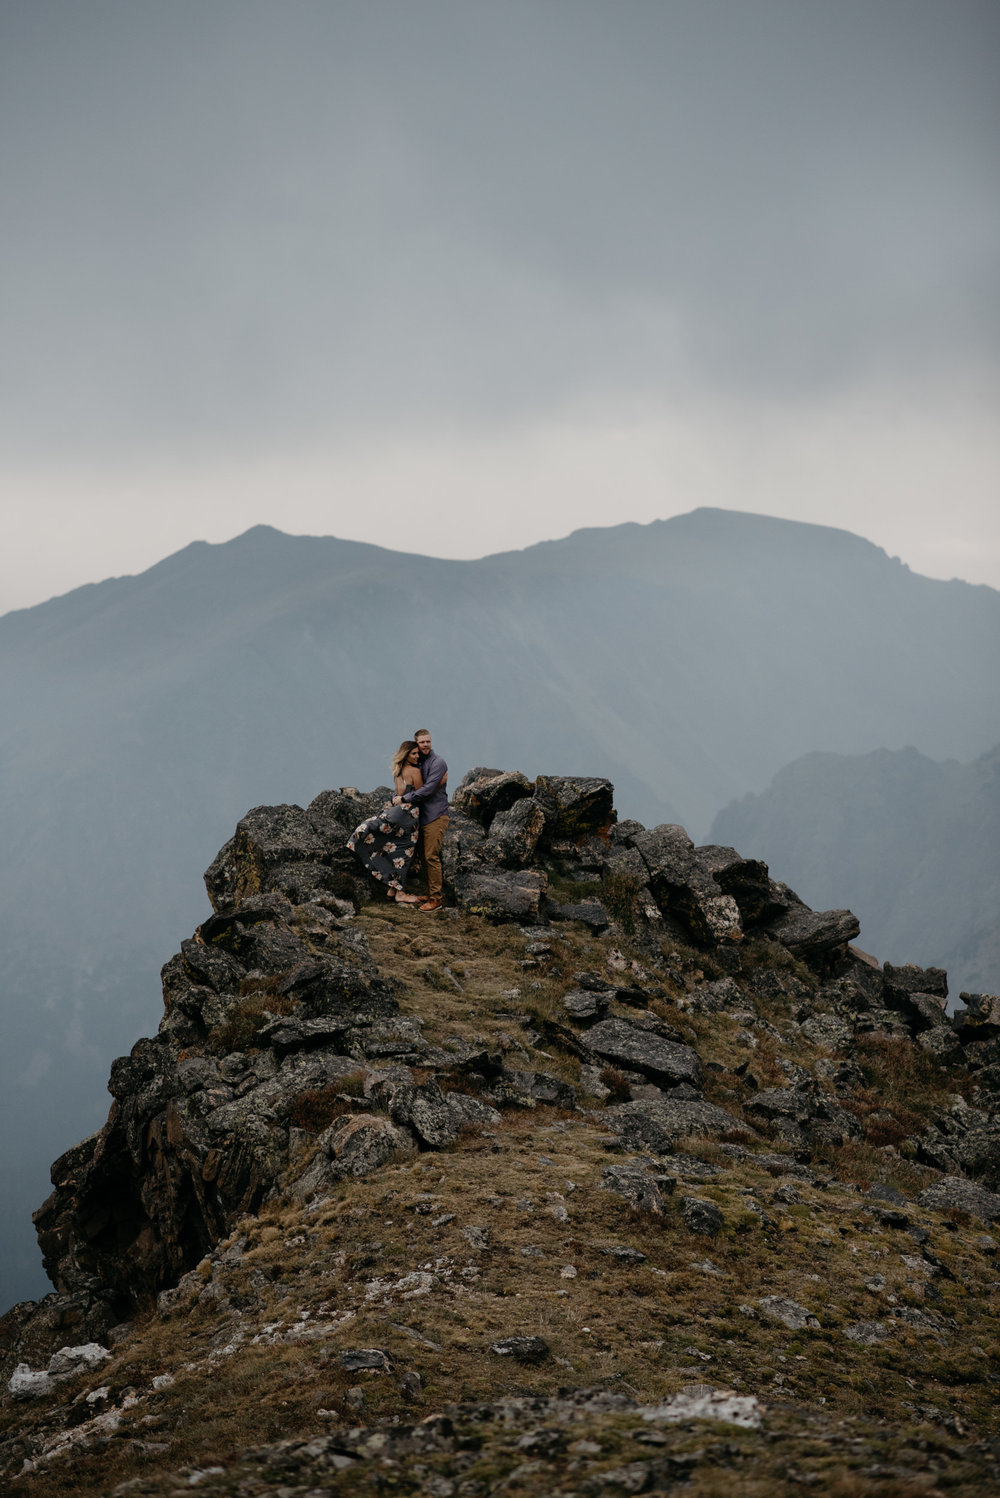 Colorado adventure elopement photographer, Alyssa Reinhold. Adventure engagement session in Rocky Mountain National Park.